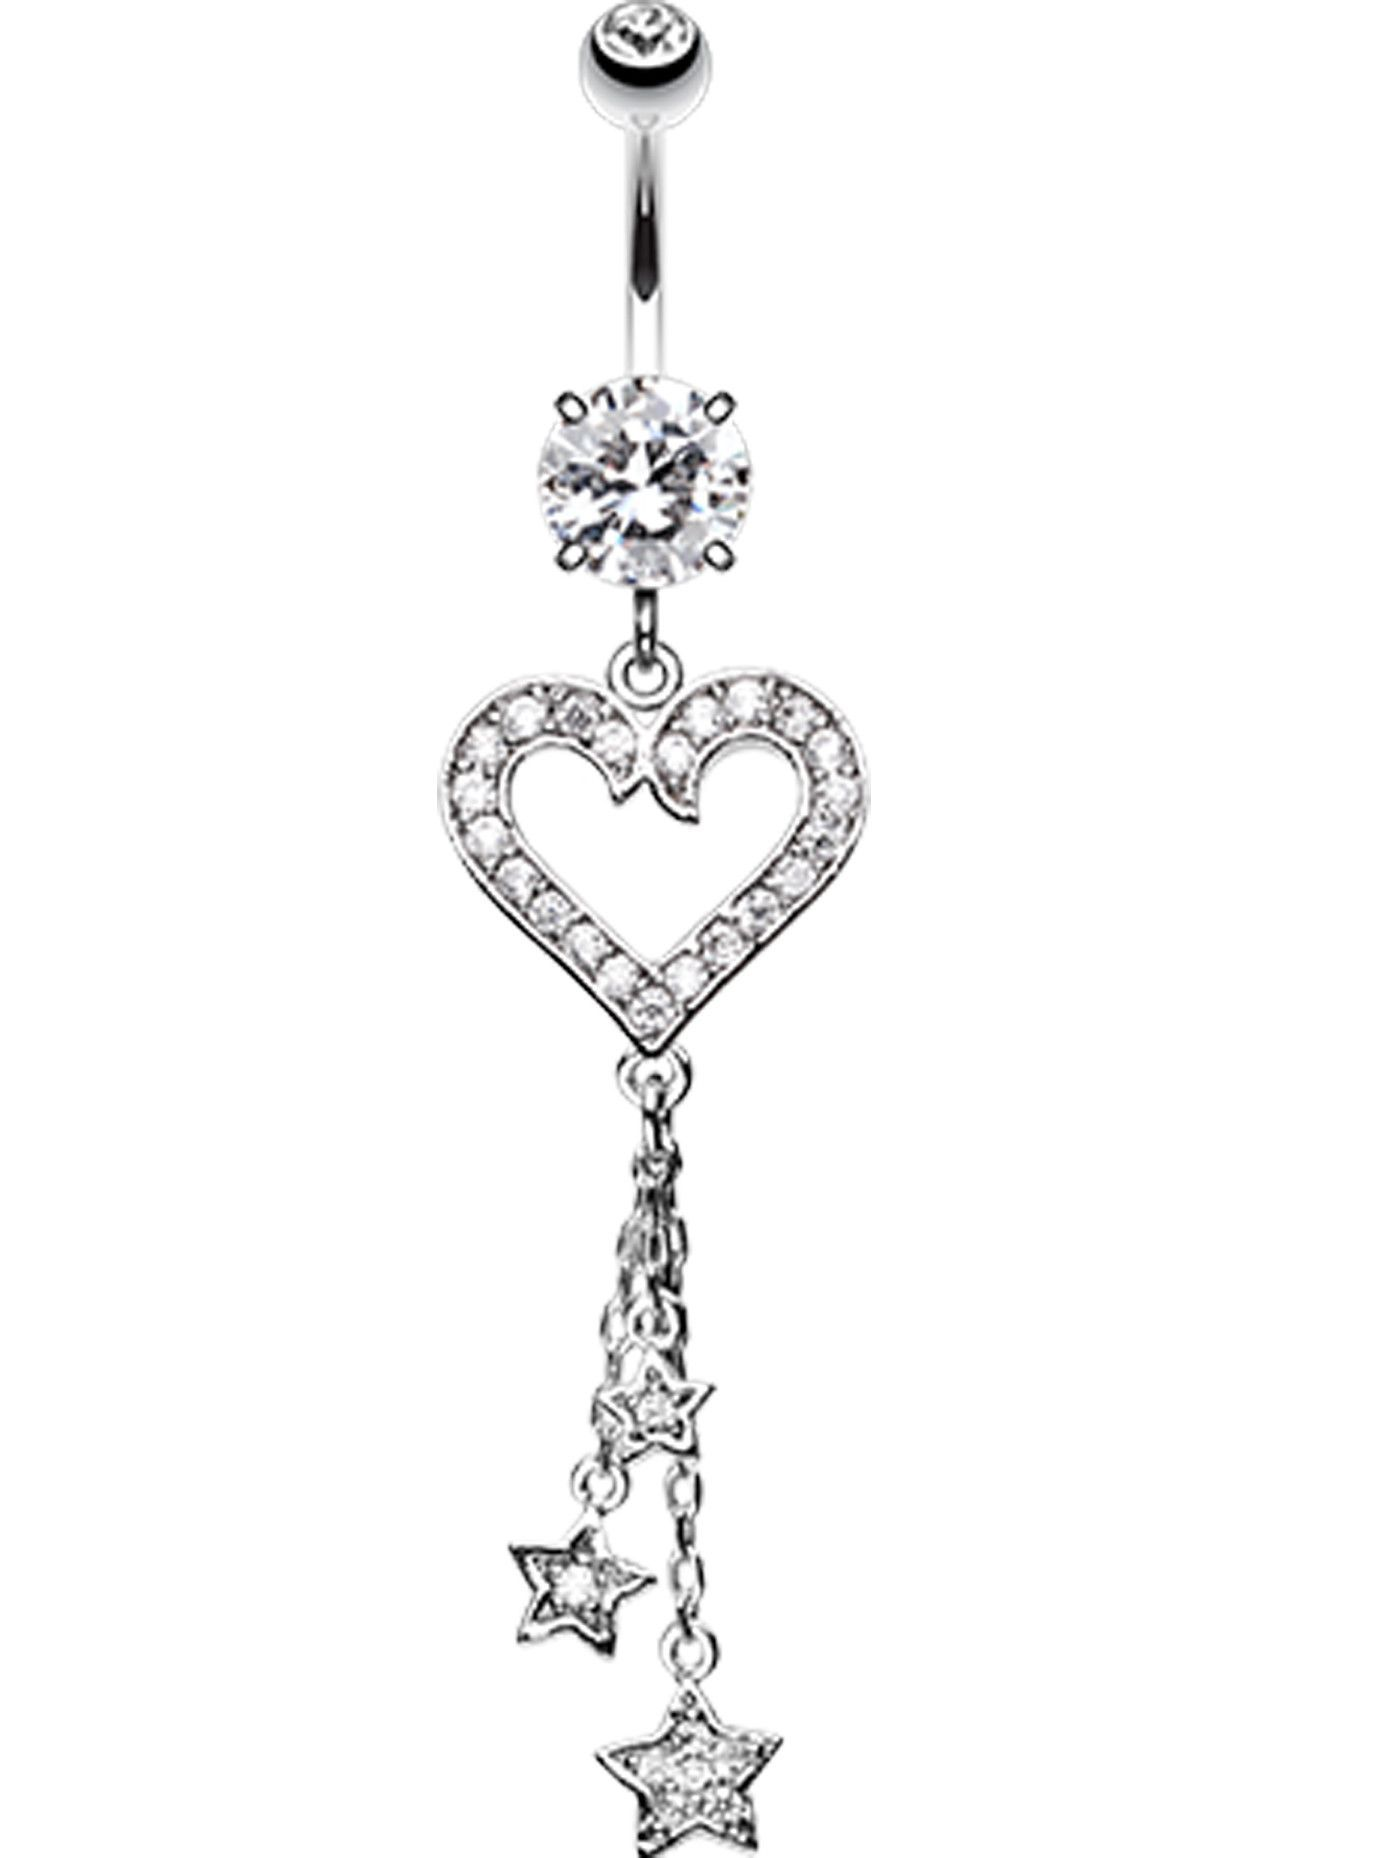 Piercing on belly  Heart Star Sparkles Belly Button Ring  piercings  Pinterest